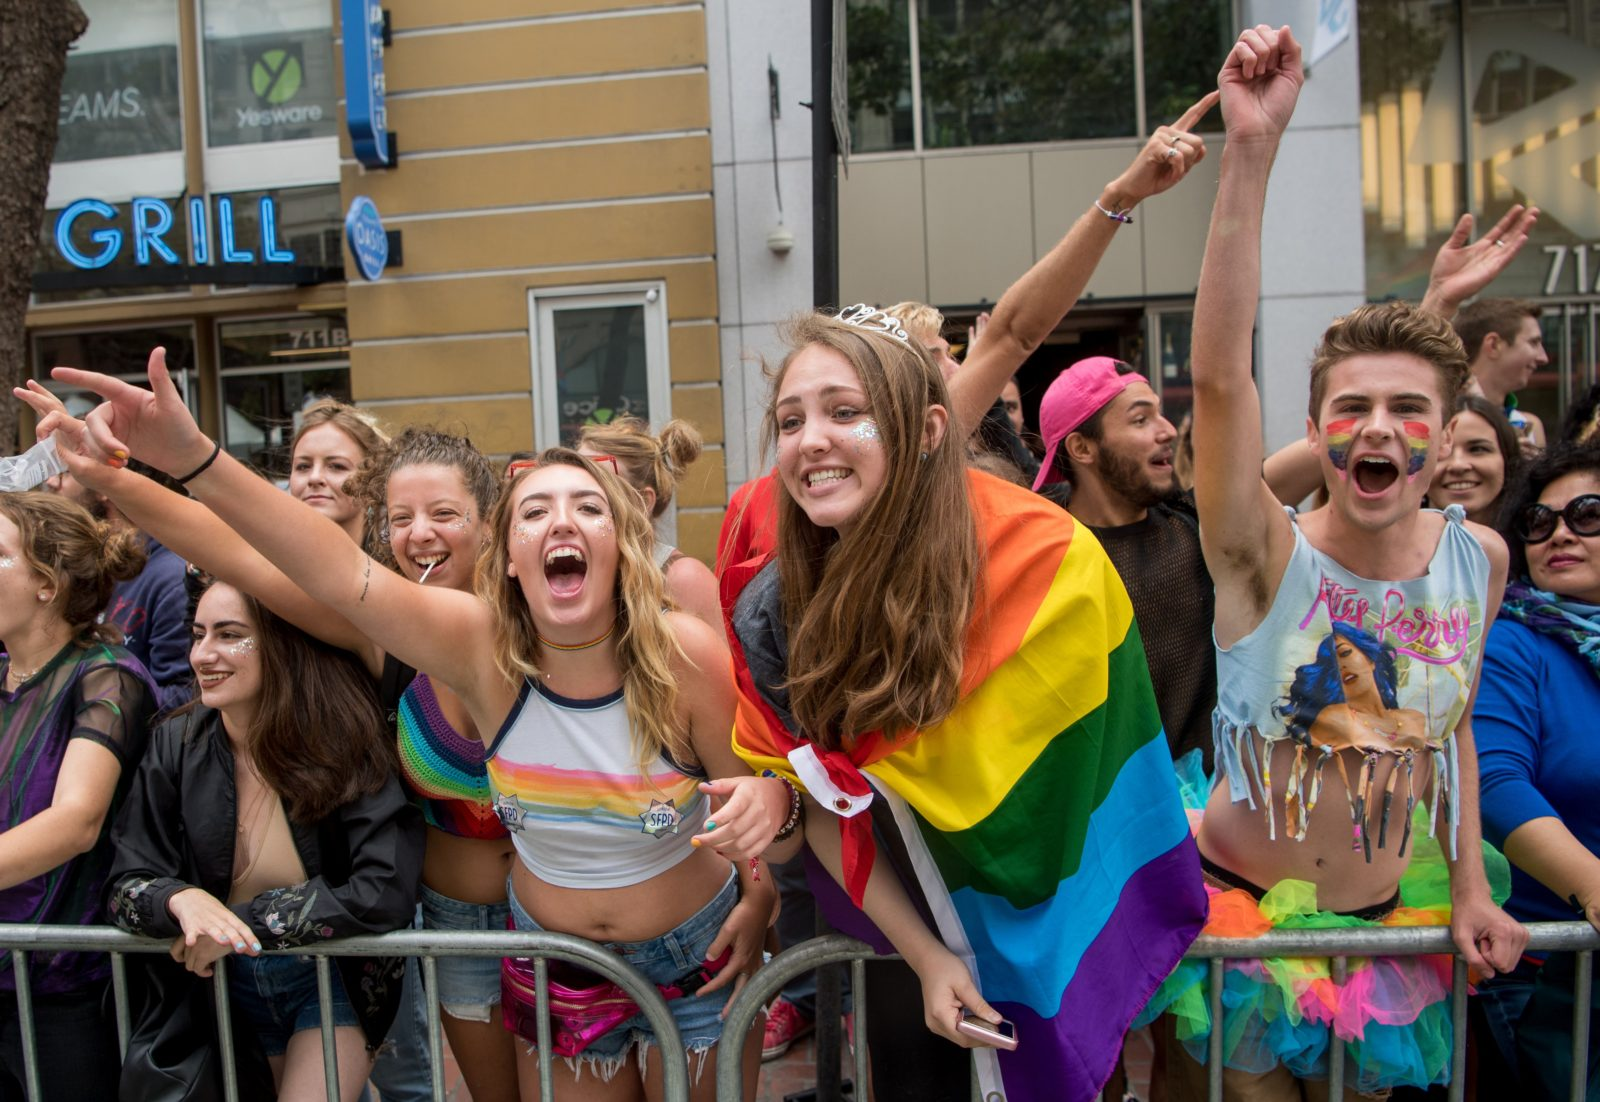 Ciara Hall (L) cheers with friends during the San Francisco Pride parade in San Francisco, California on Sunday, June, 25, 2017. / AFP PHOTO / Josh Edelson (Photo credit should read JOSH EDELSON/AFP/Getty Images)